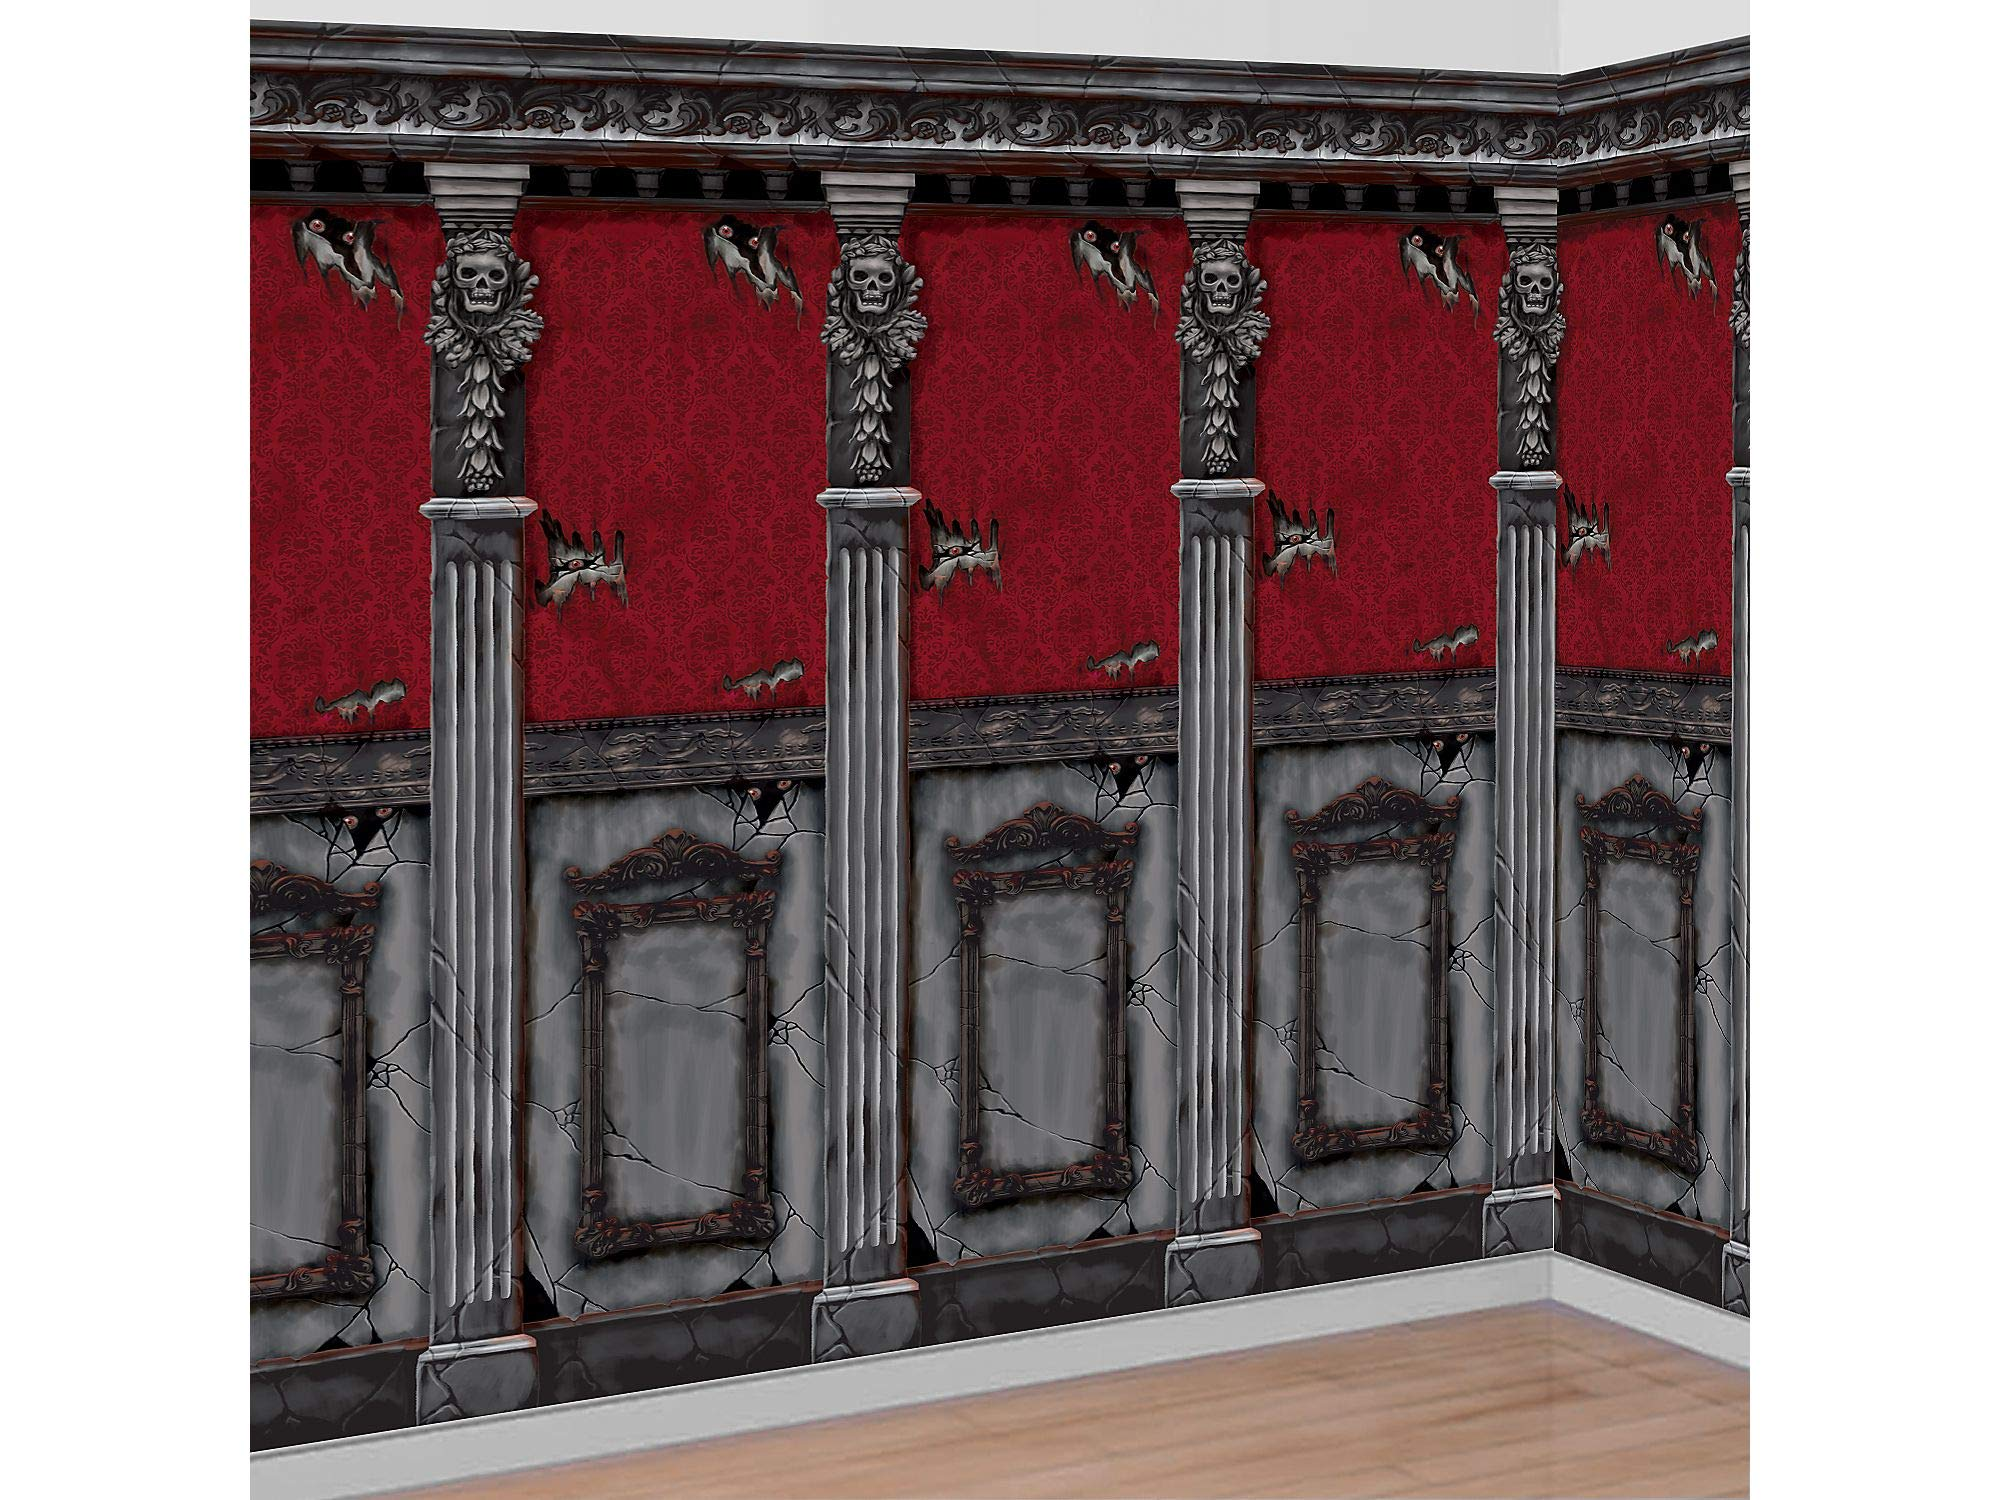 AMSCAN Gotham Mansion Room Rolls Halloween Decorations, For Indoor and Outdoor Use, 4' H x 20' L by amscan